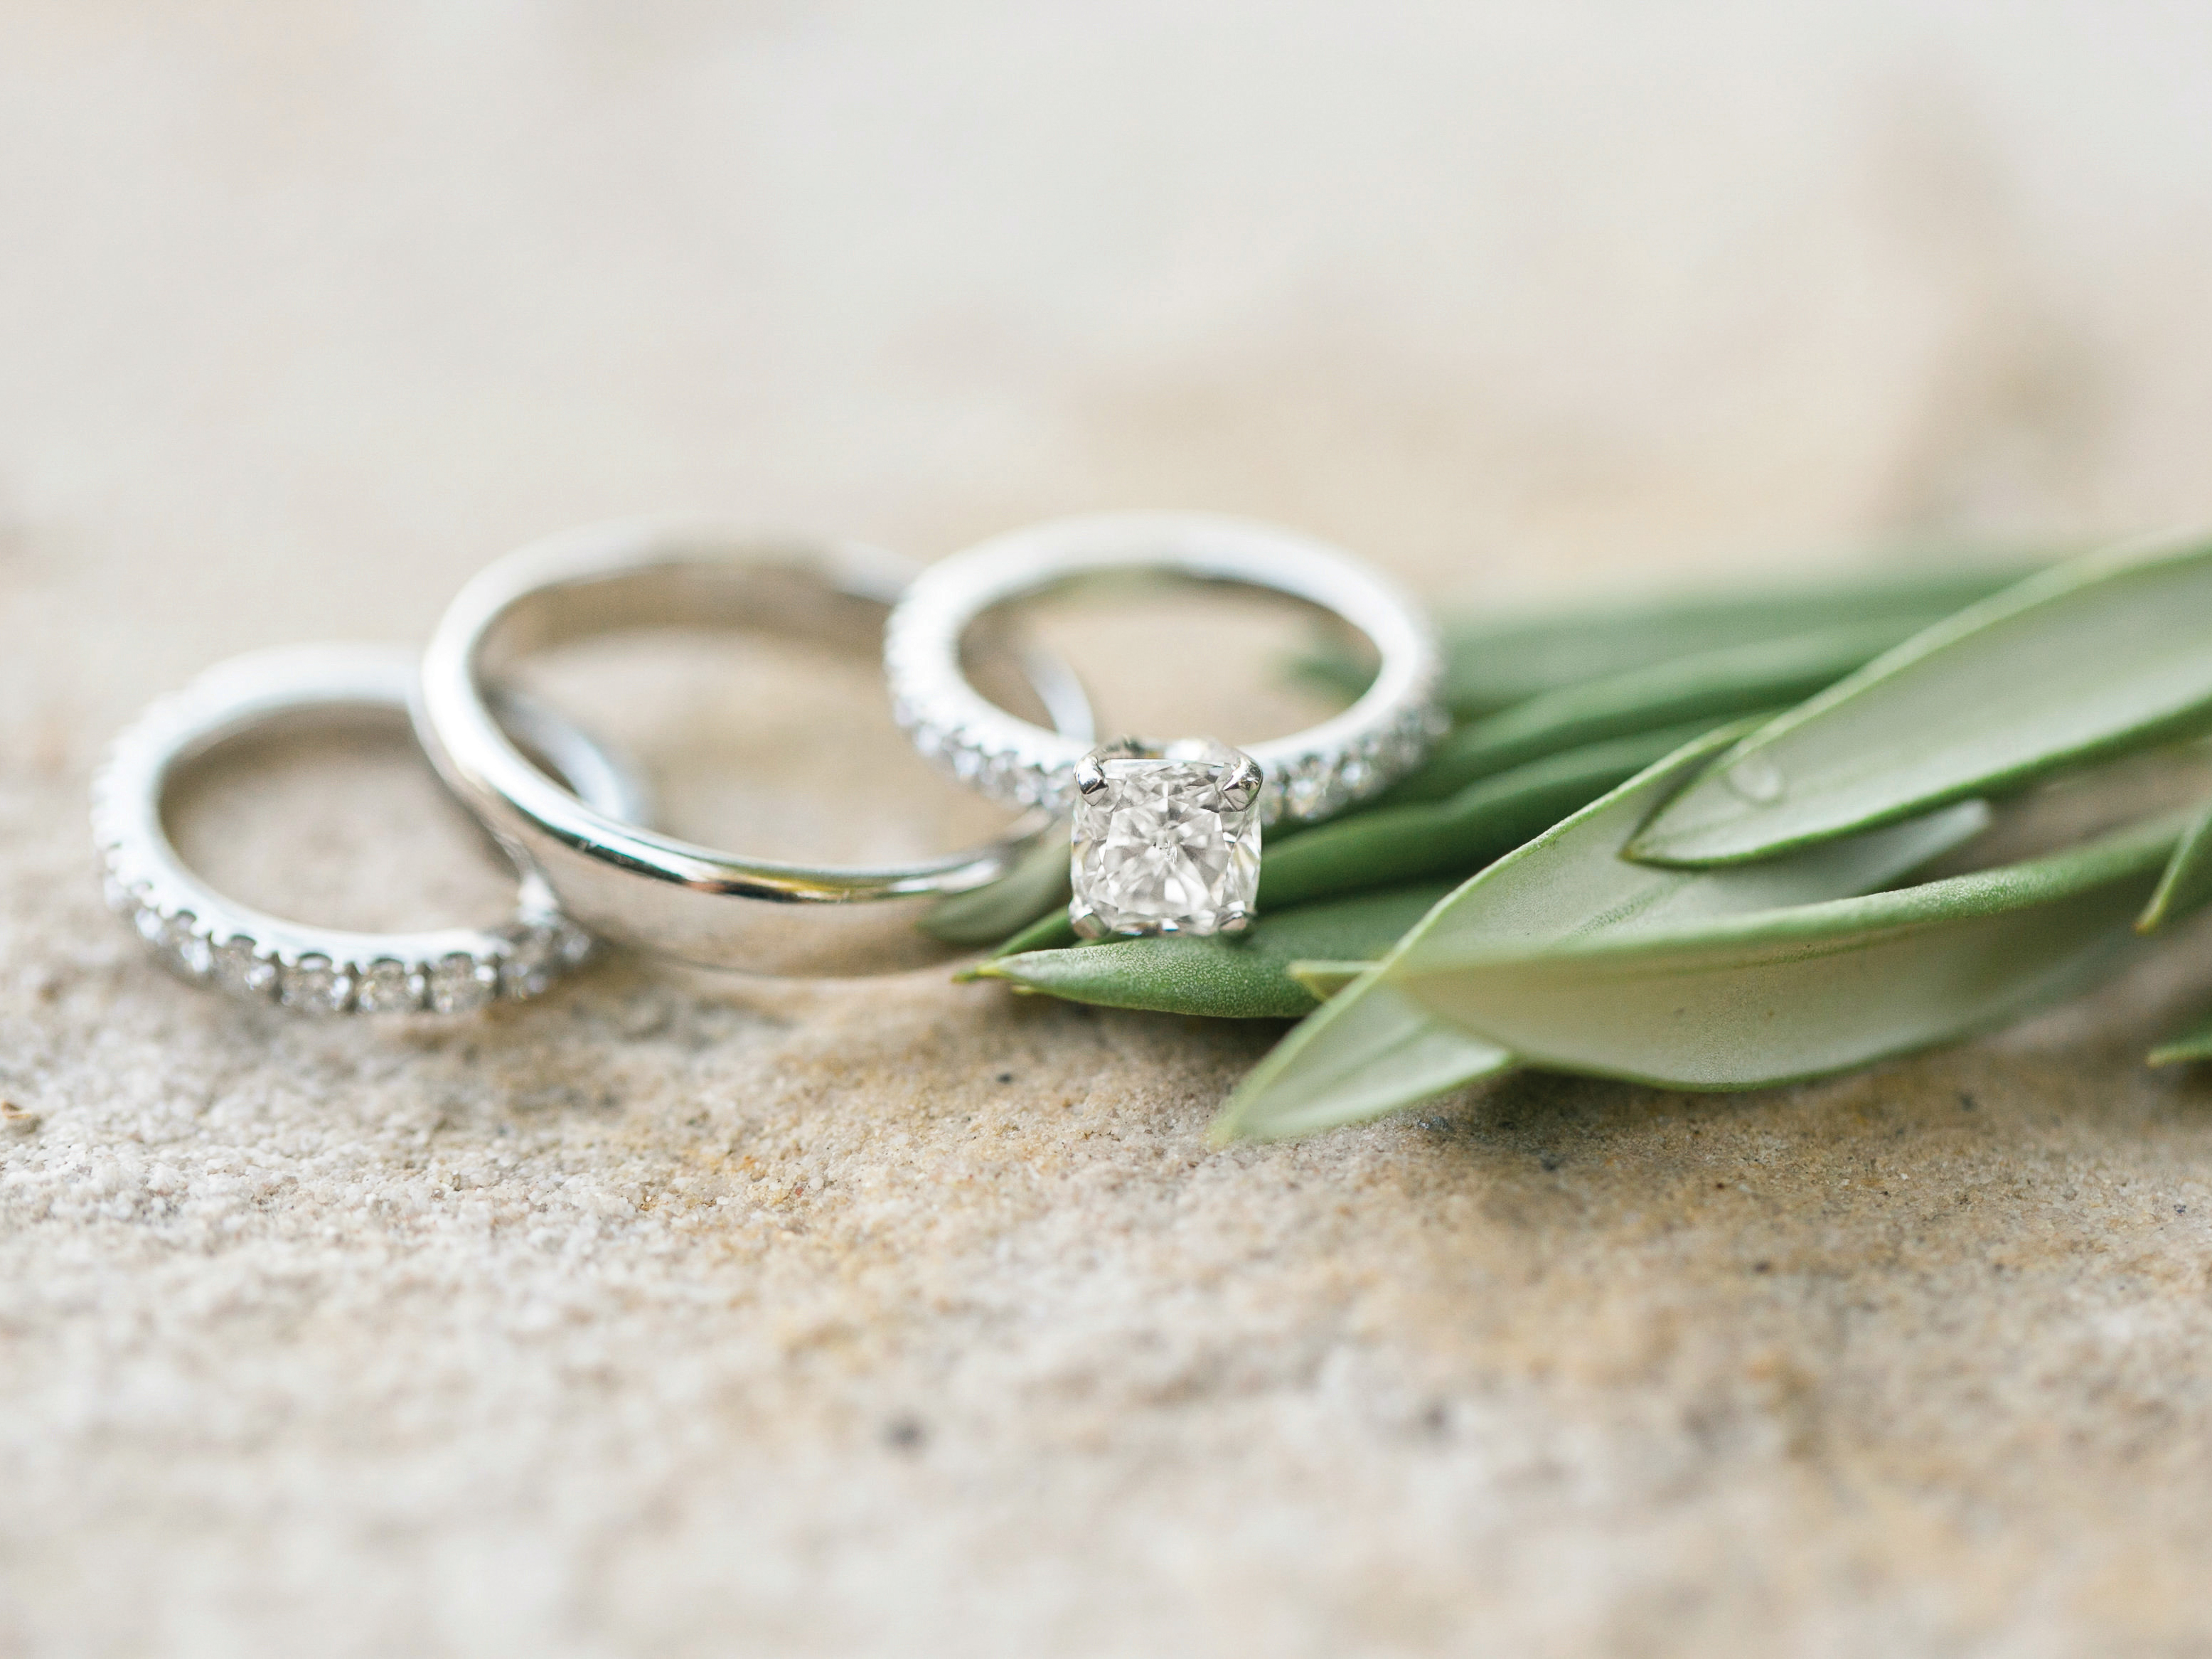 How To Choose An Engagement Ring: Ideas And Inspiration